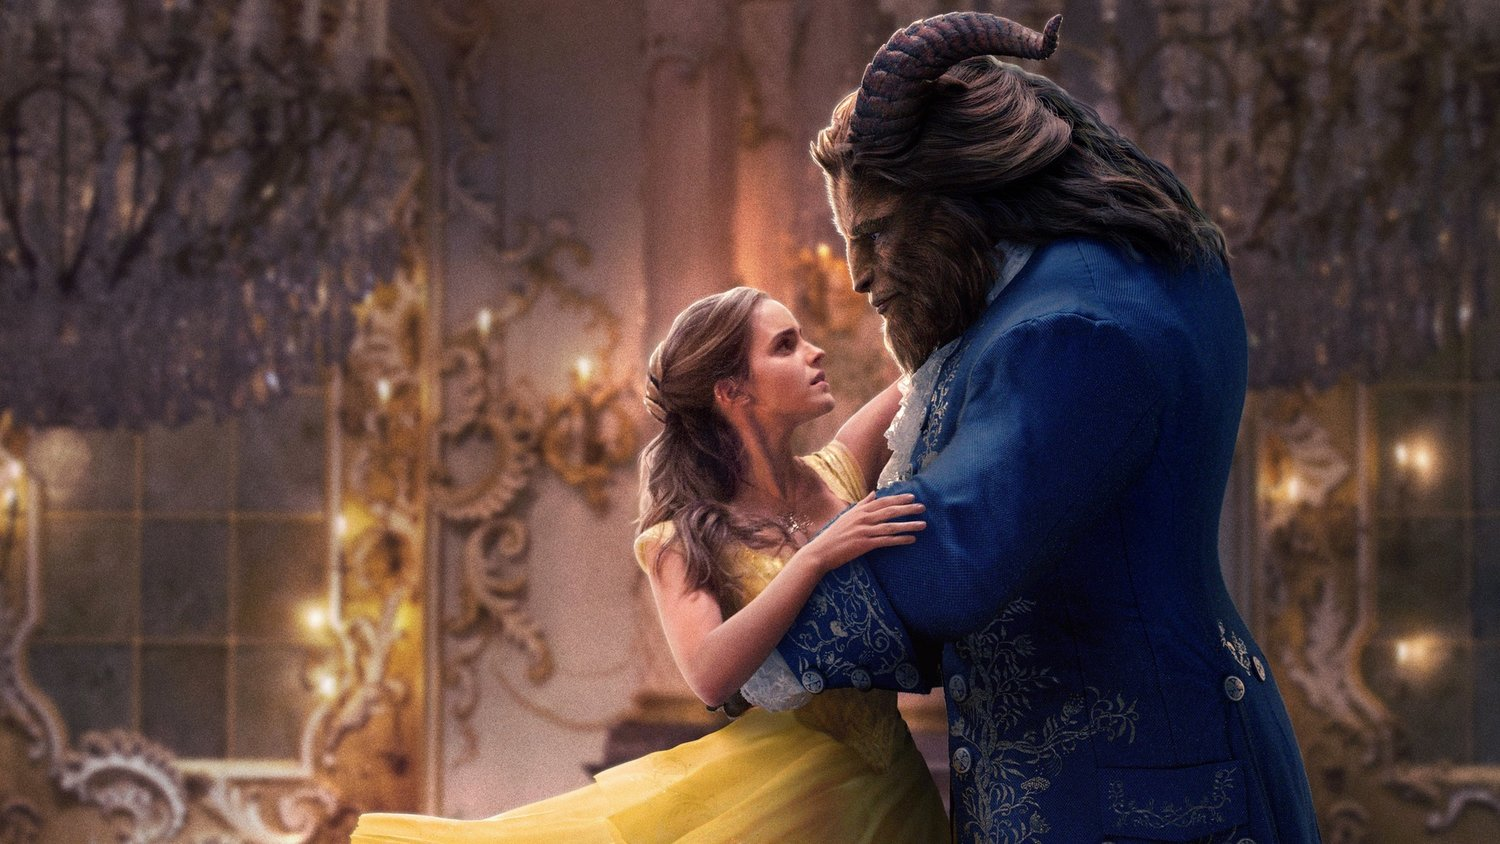 Review: BEAUTY AND THE BEAST Is a Film Any Fan of the Original Will Enjoy